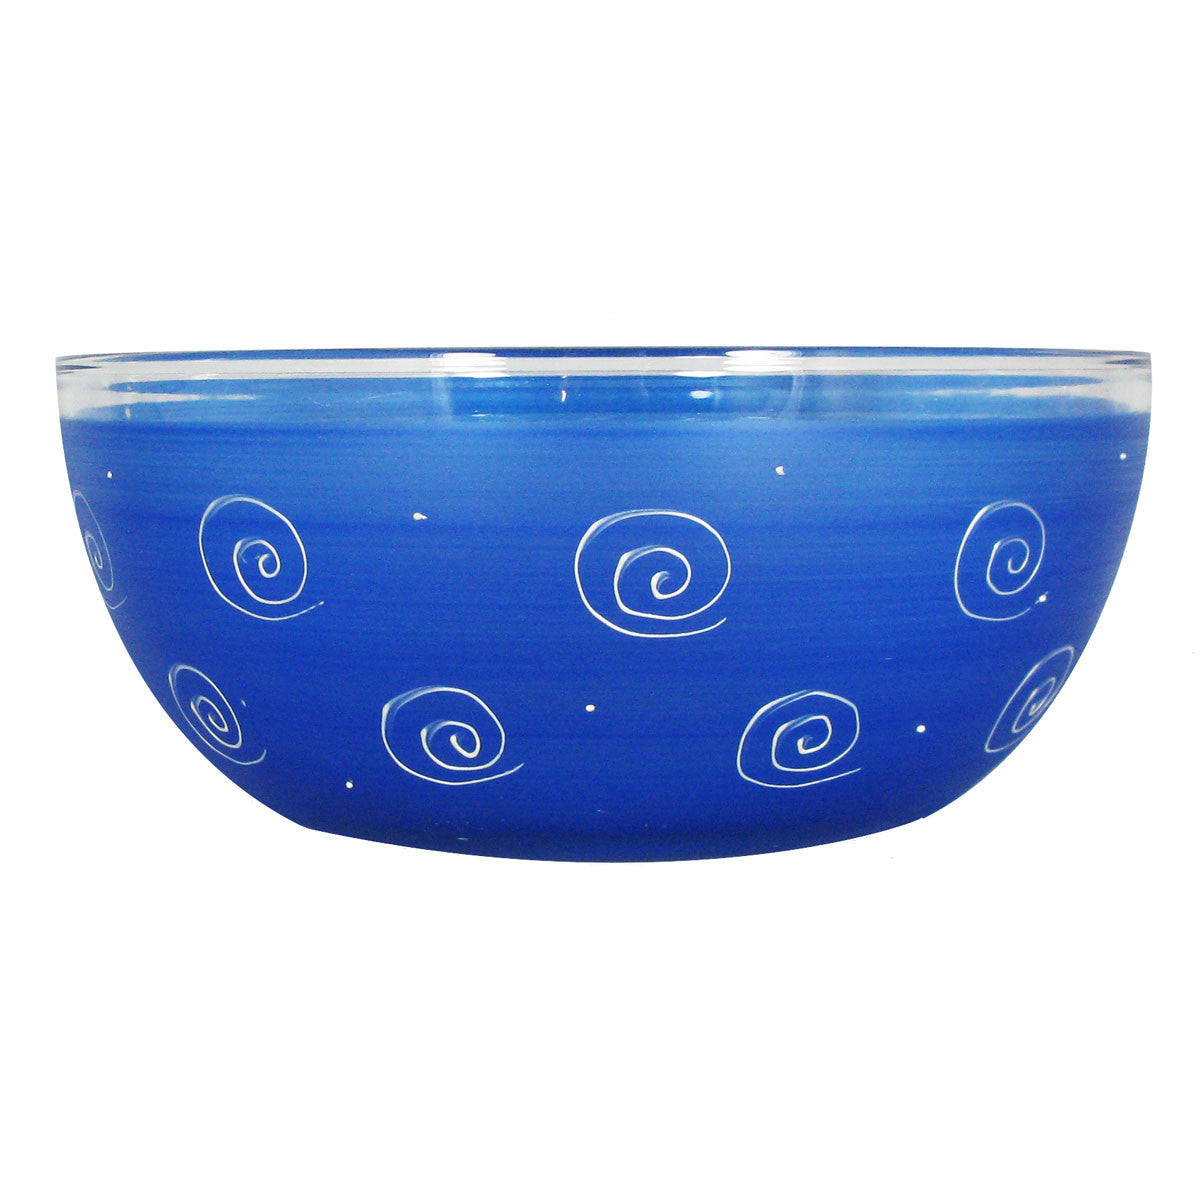 "Frosted Curl/Dot Dk Blue 11"" Bowl - Golden Hill Studio"